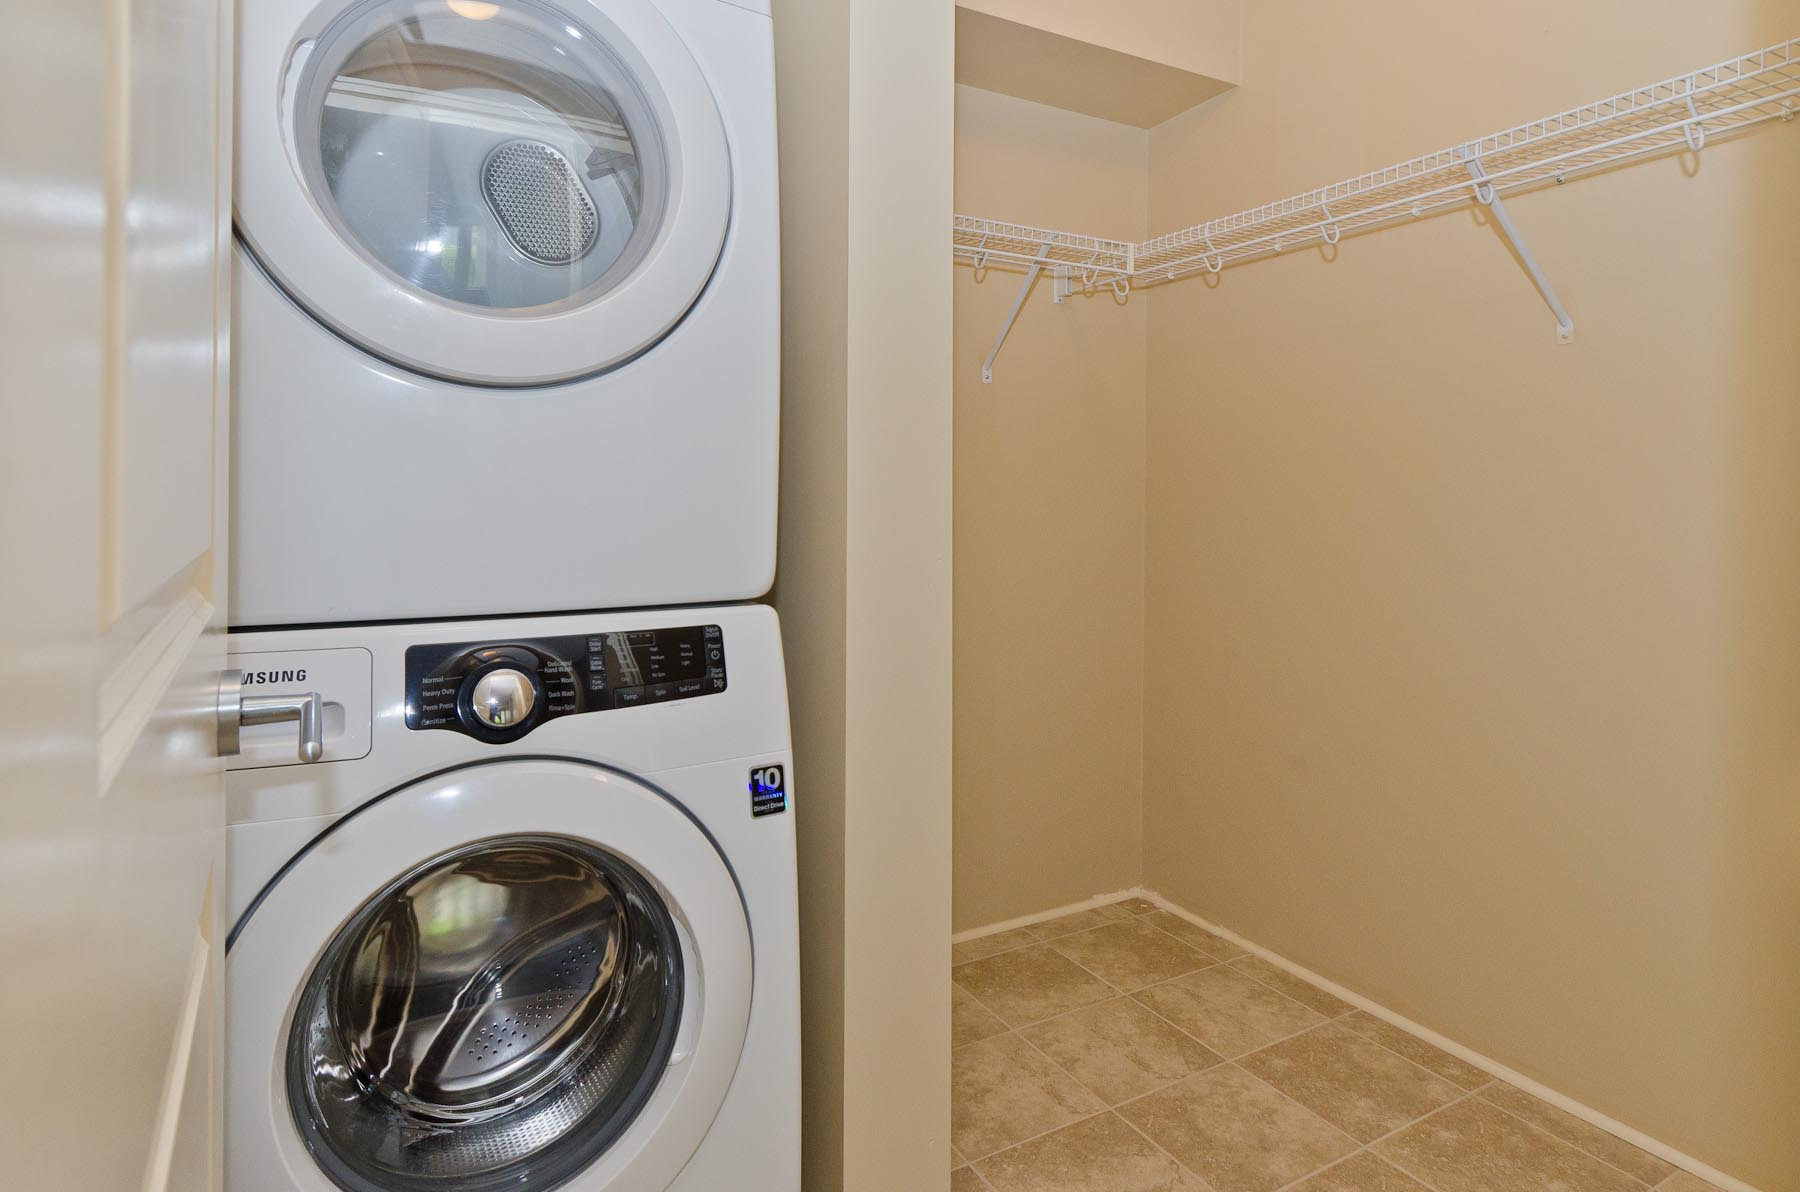 Ensuite Laundry Machines at Spruce Ridge Gardens in Calgary